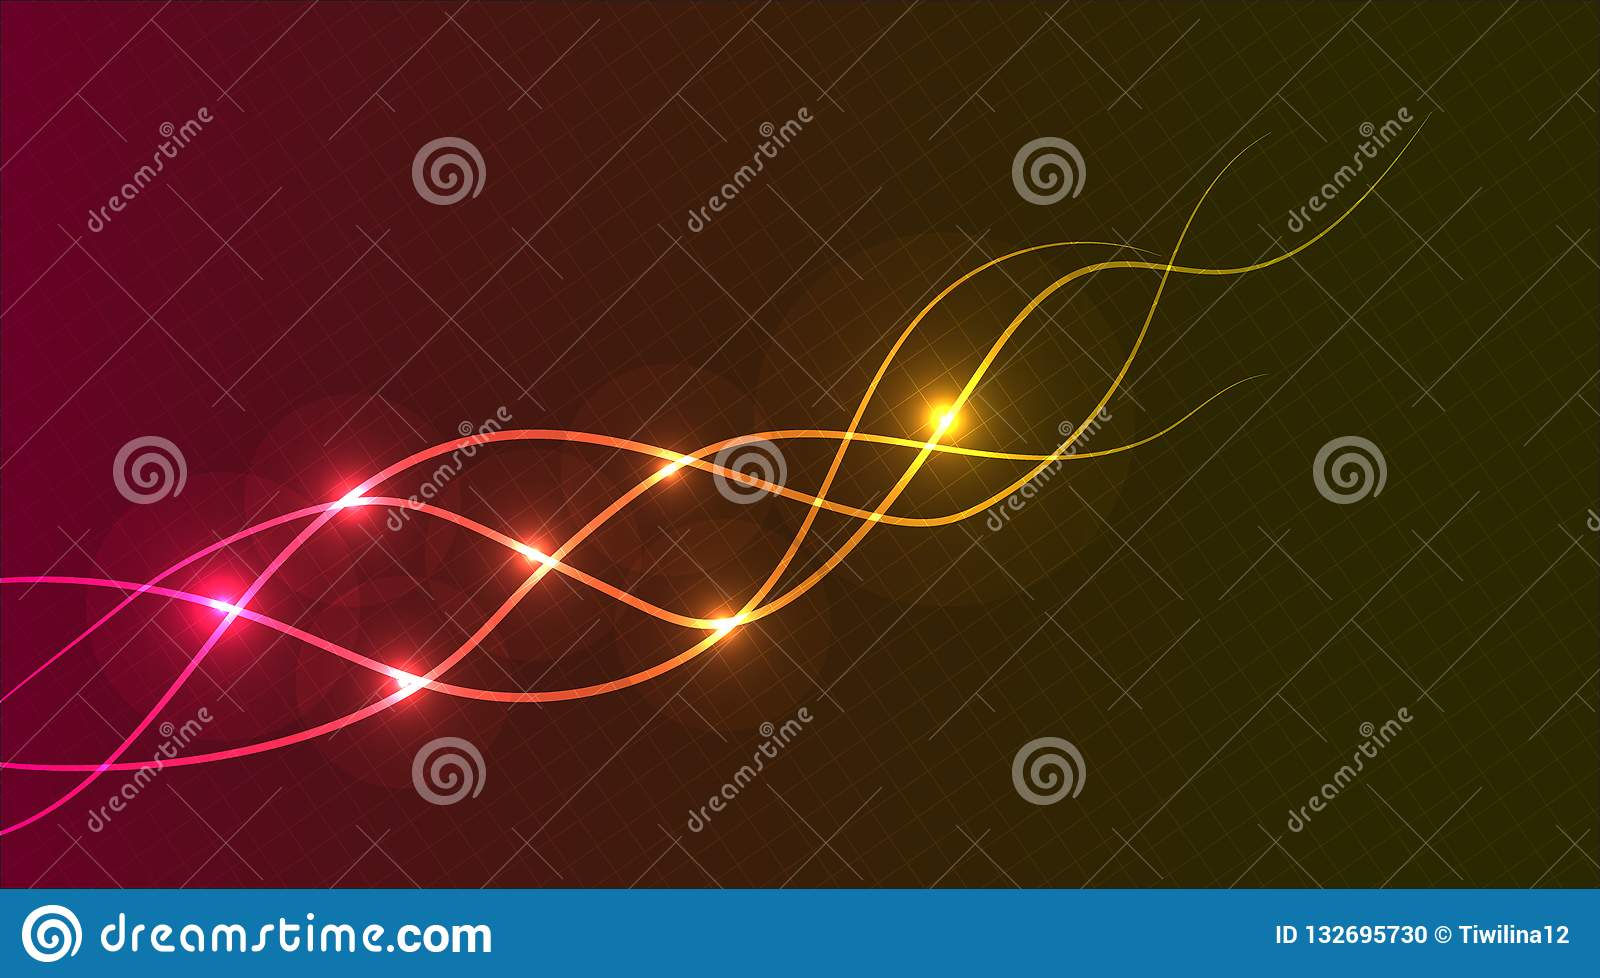 Glowing Abstract Wave Lines Background Purple And Dark